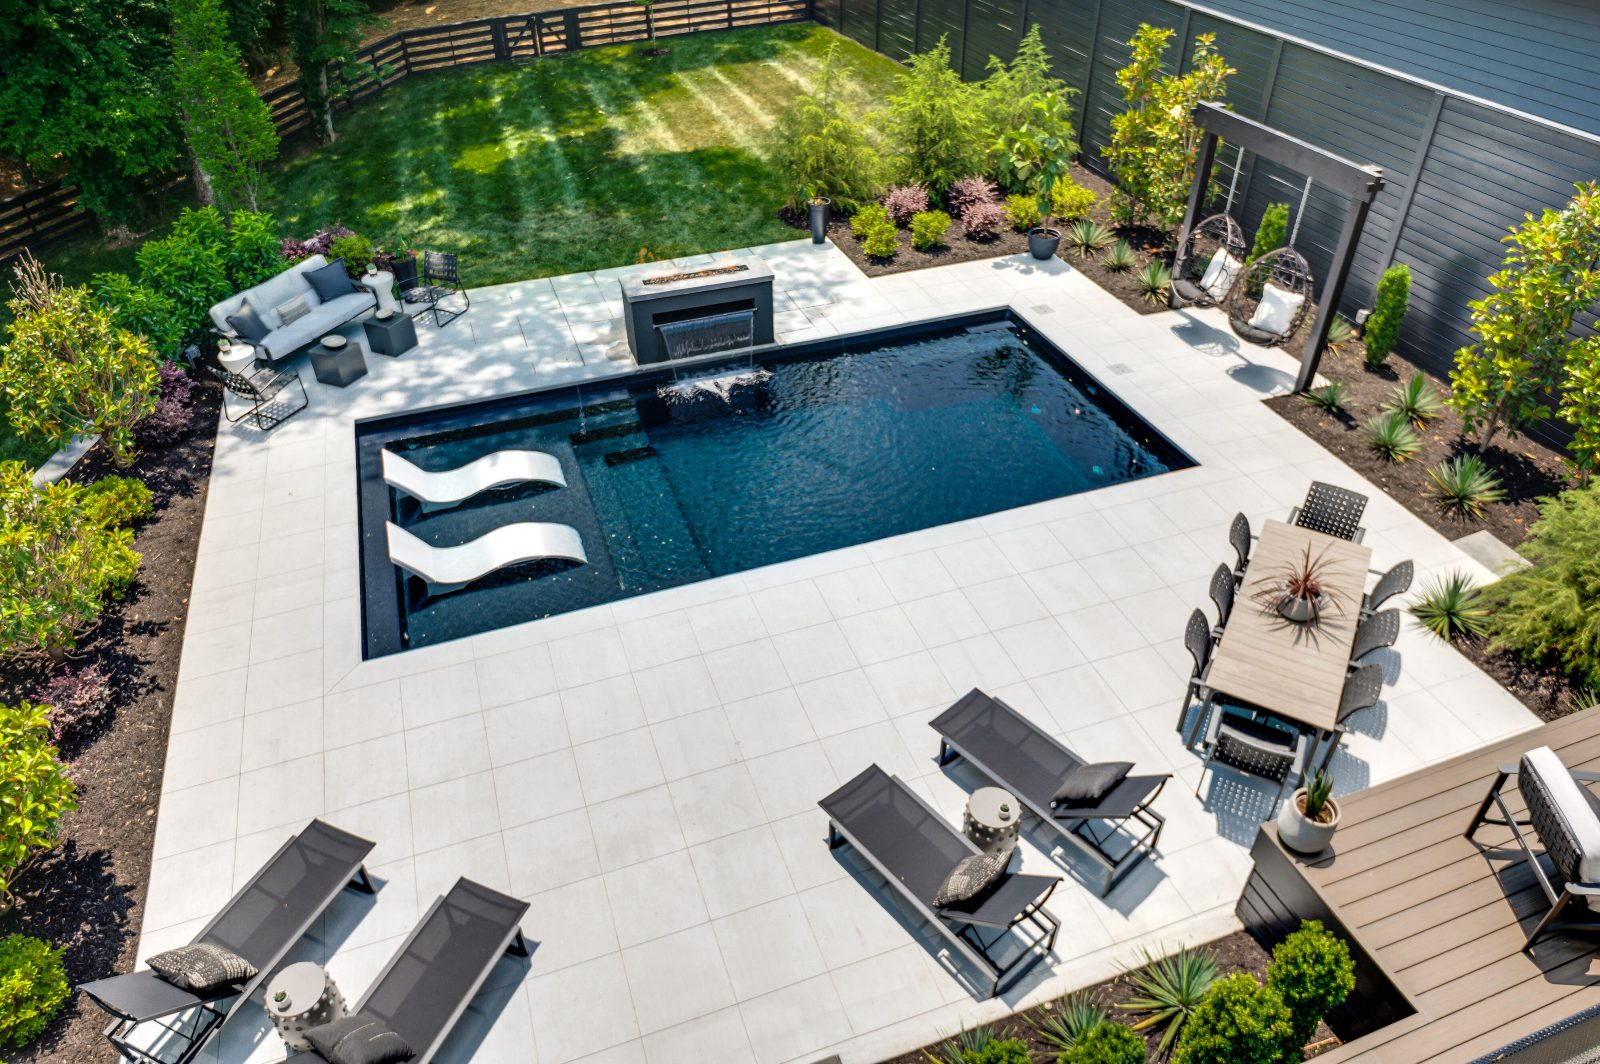 Pool and outdoor entertaining space in Green Hills, TN backyard